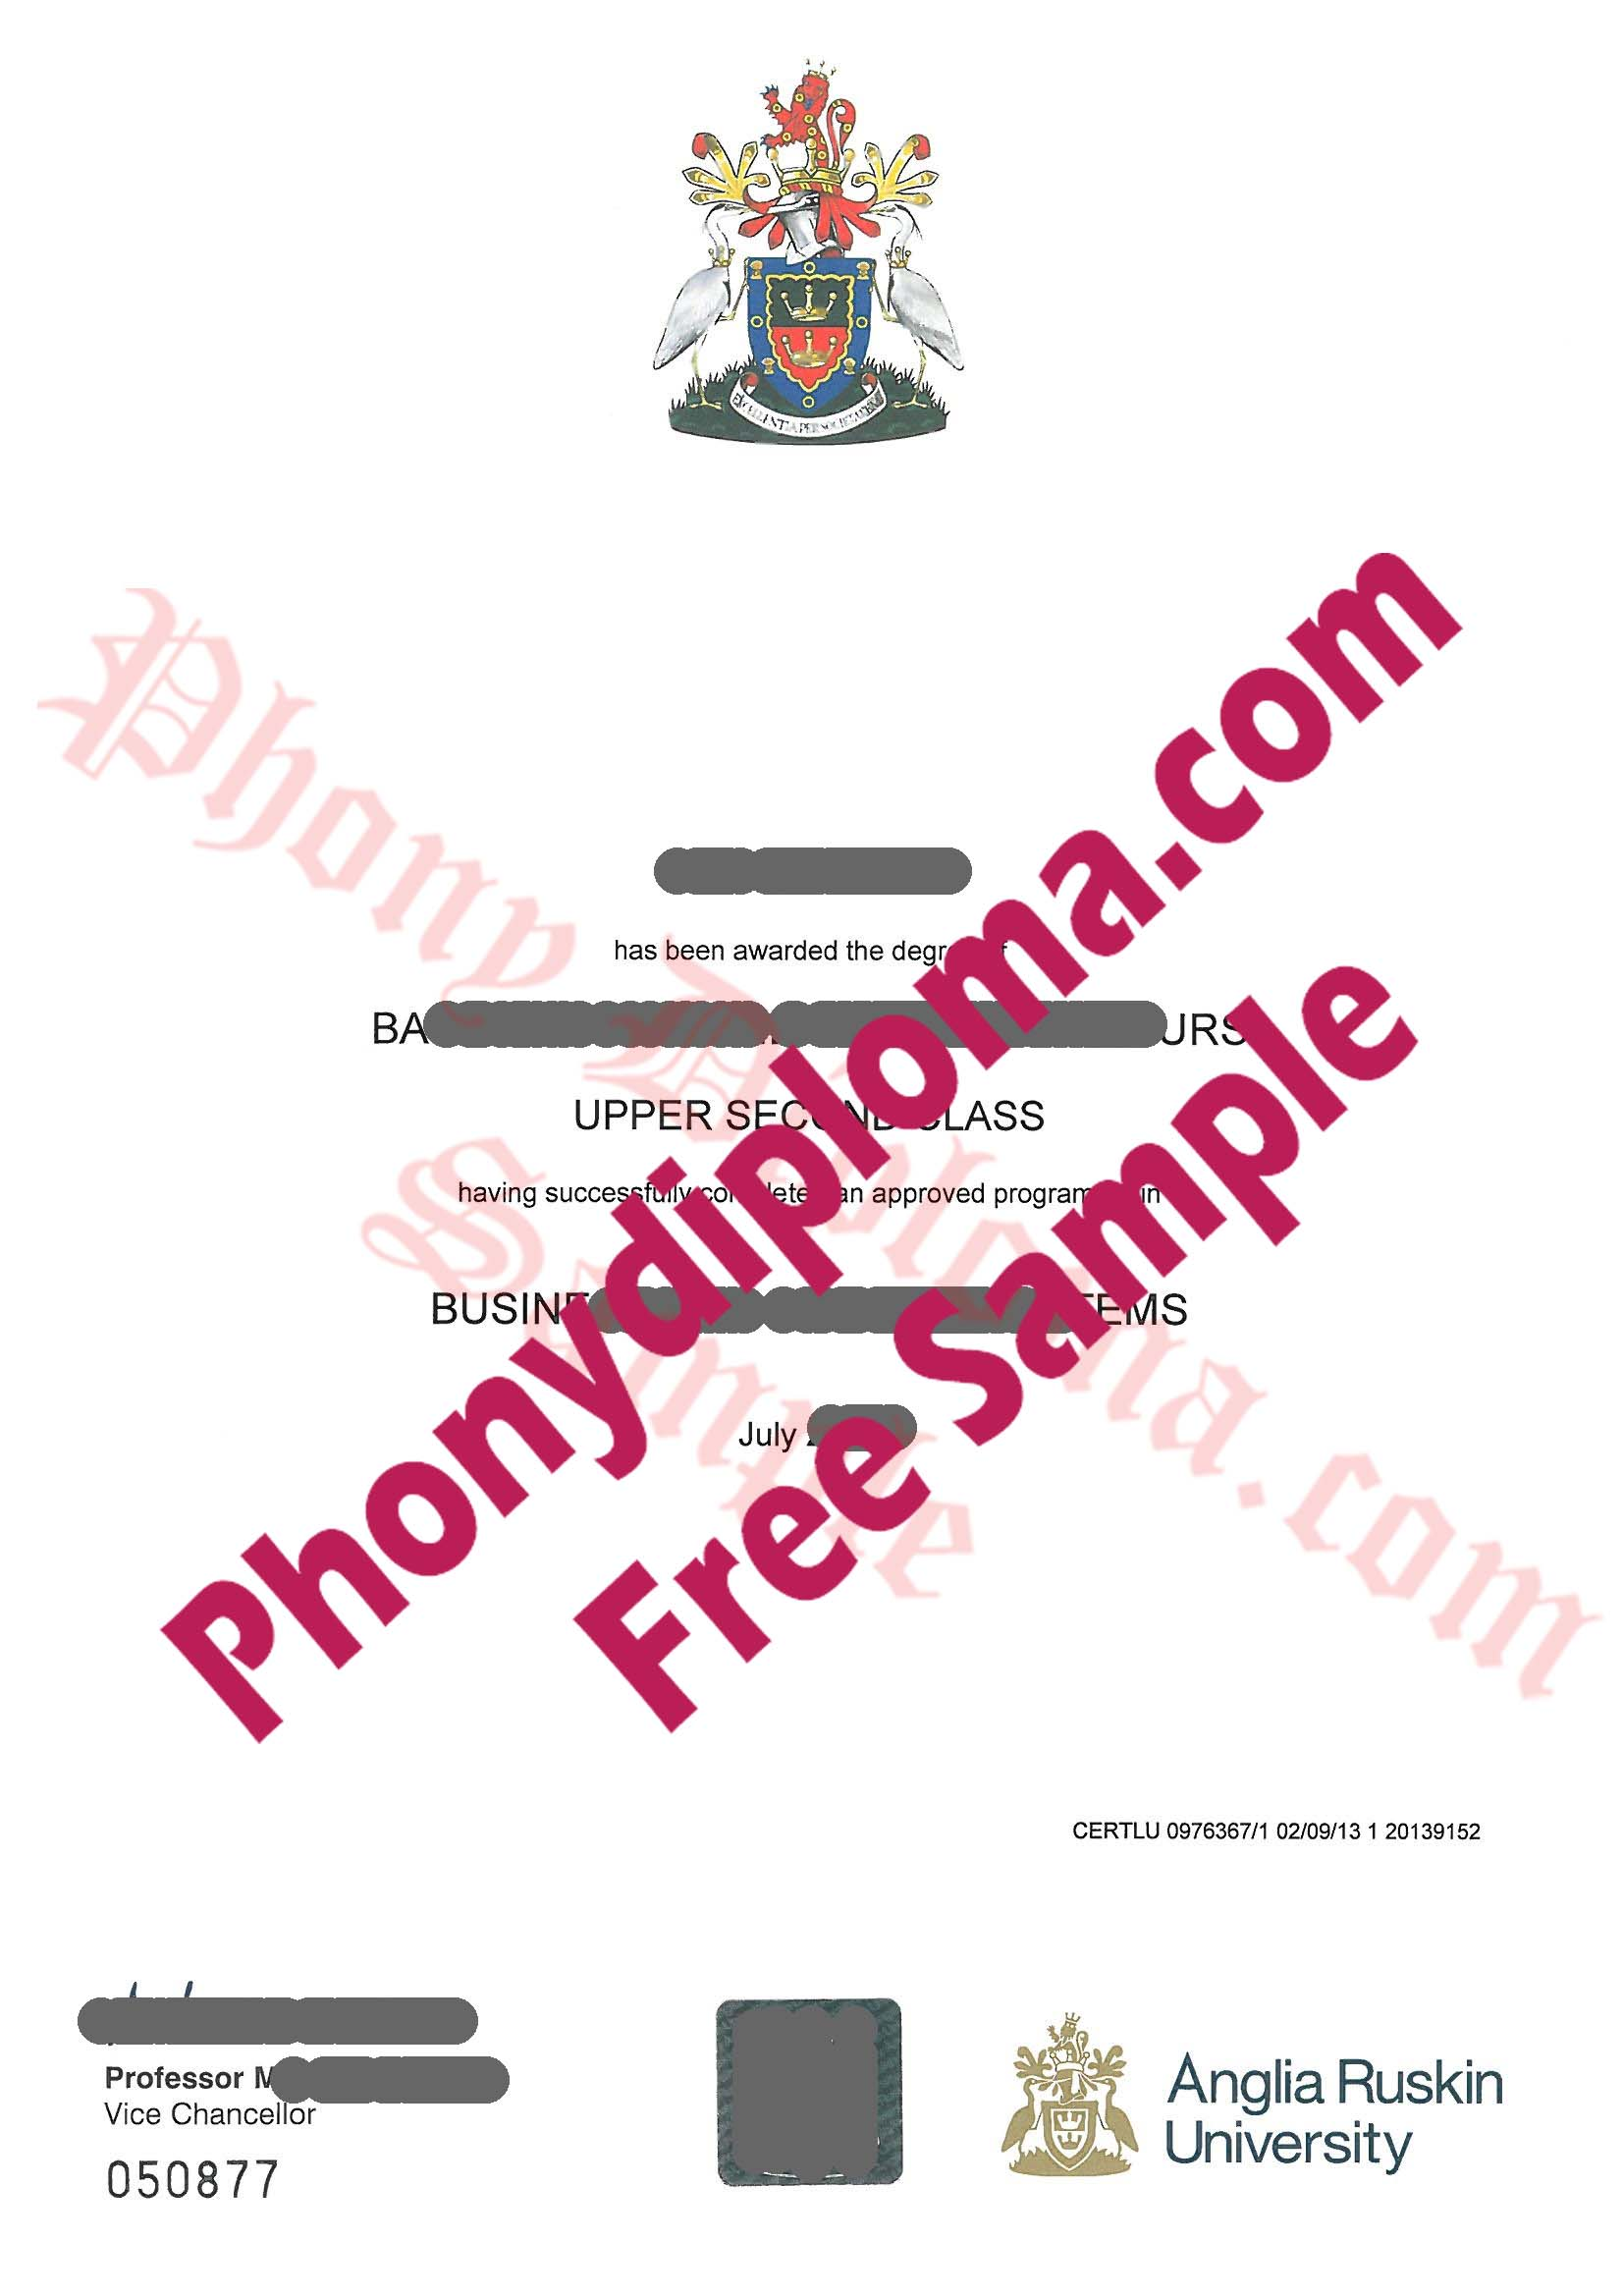 C& Danglia Ruskin Free Sample From Phonydiploma